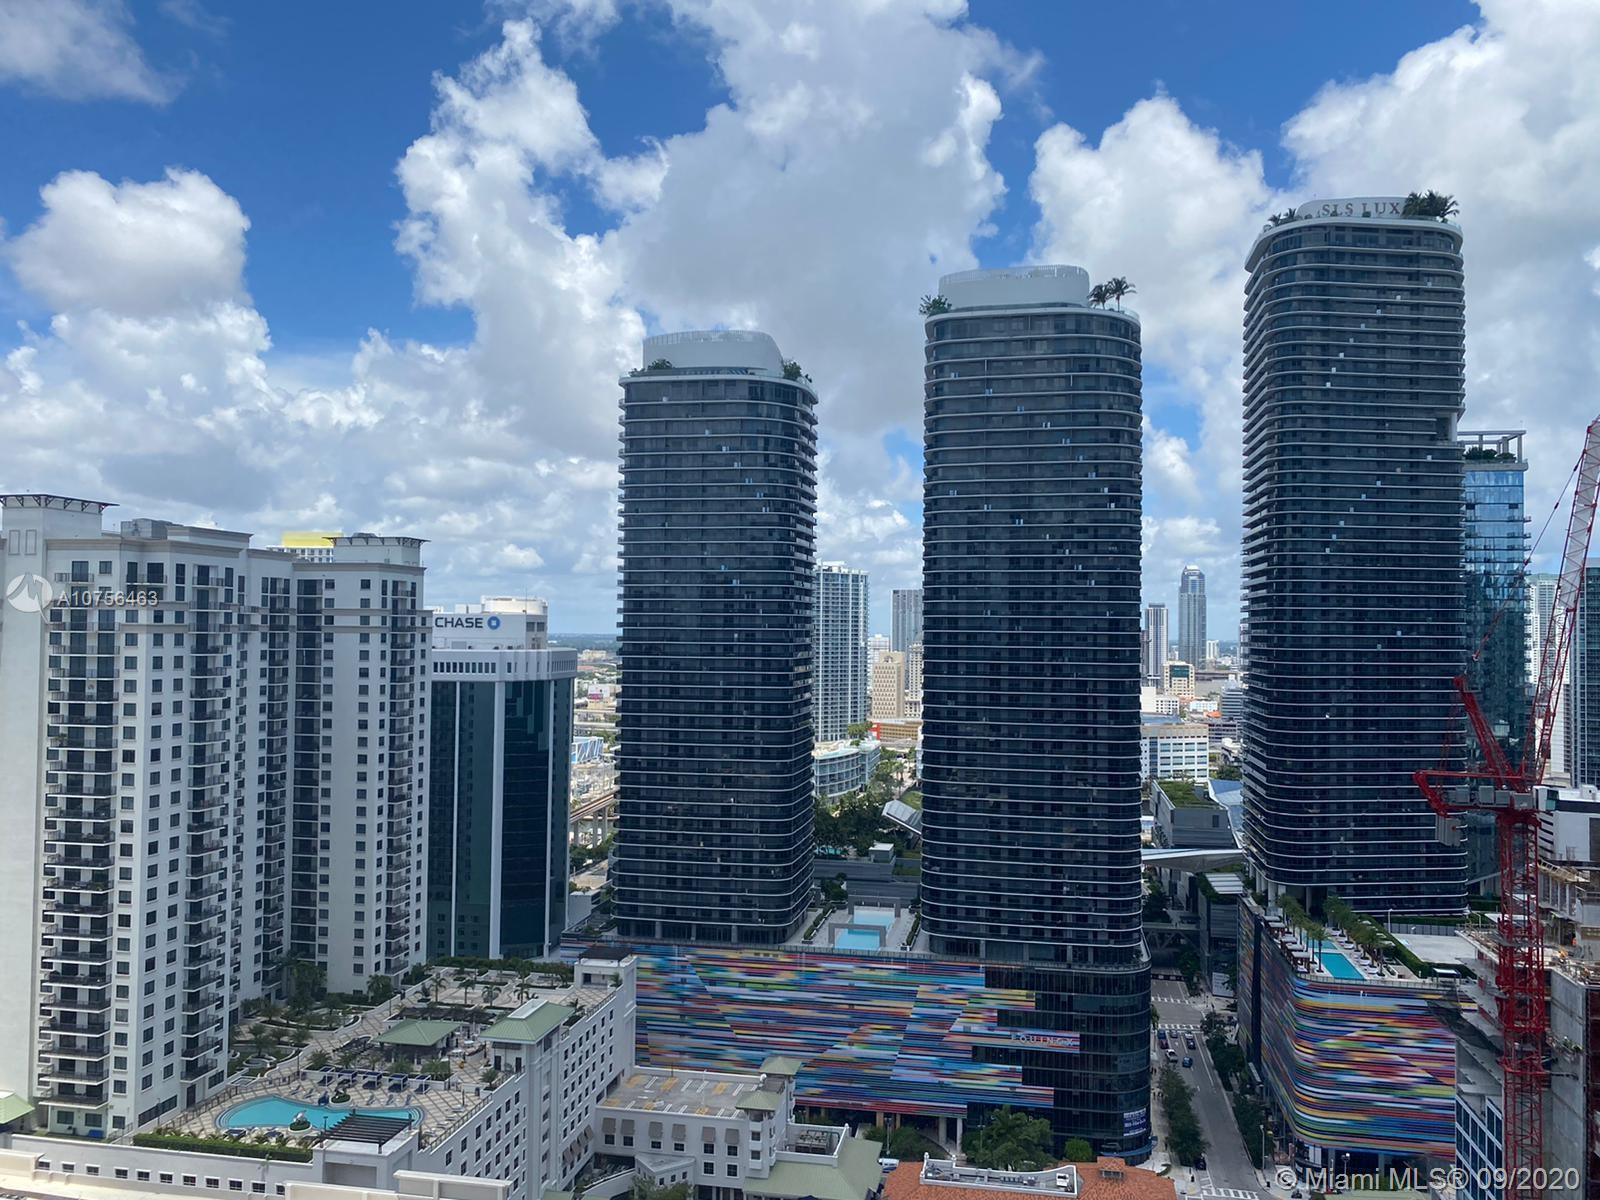 DISCOUNTED 1-BED UNIT AT MILLECENTO.   HIGH-FLOOR UNIT WITH LOTS OF LIGHT.  GREAT AMENITIES AND LOCATED IN THE HEART OF BRICKELL